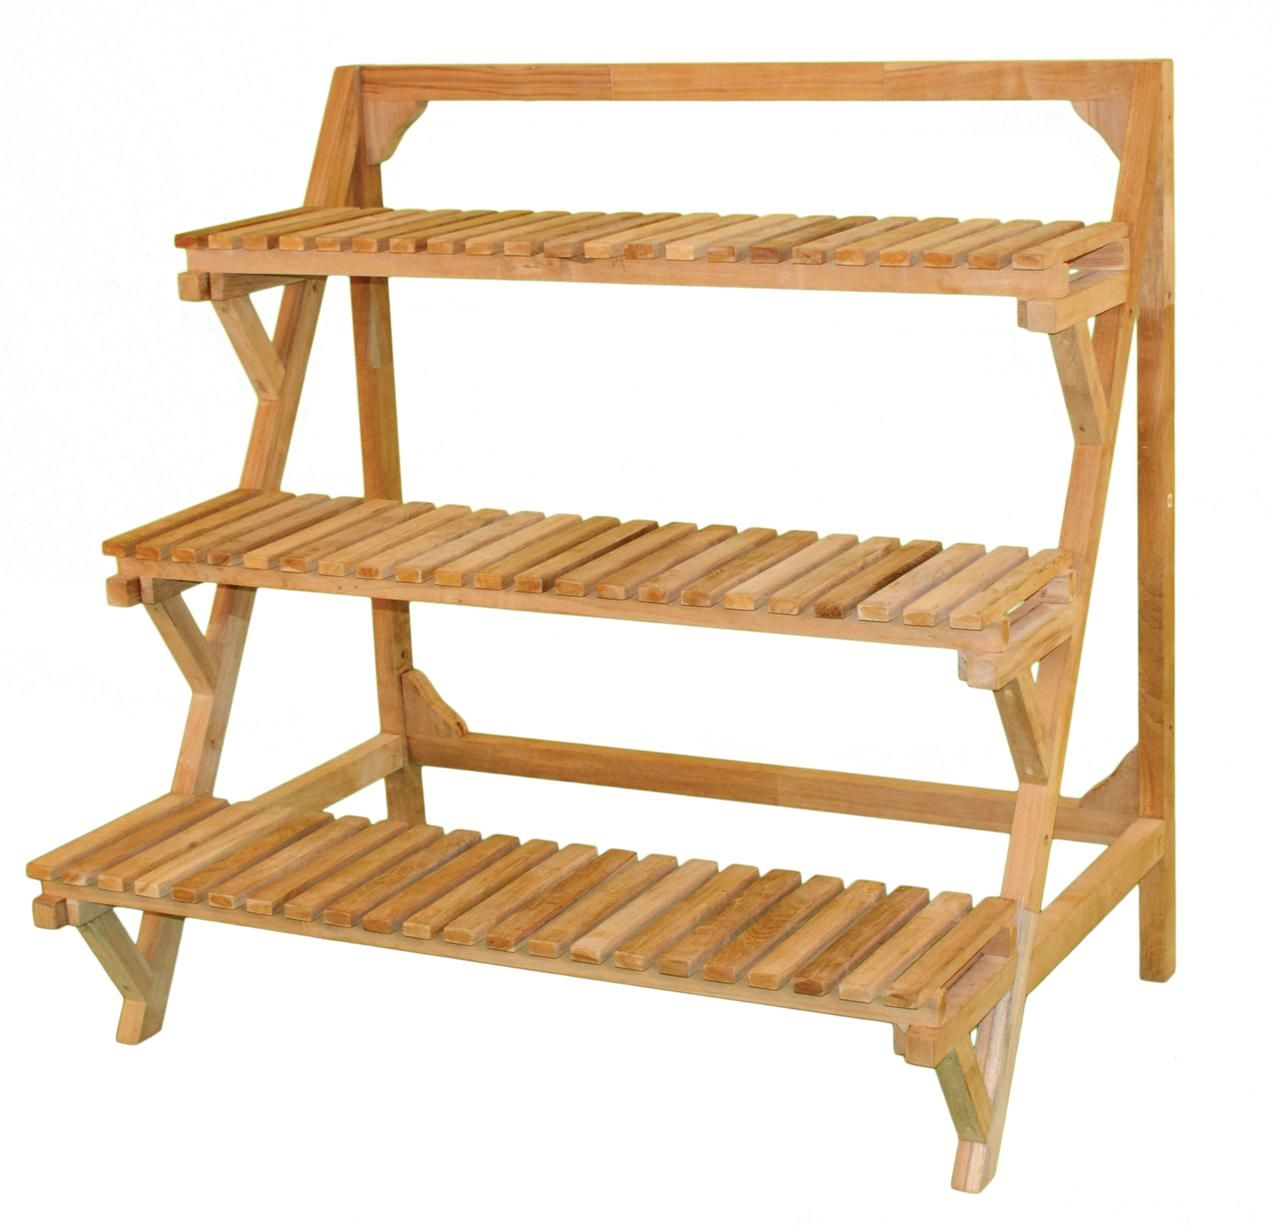 Tiered Outdoor Indoor Plant Stand Eucalyptus Wood Patio Planter Shelf 3  Tier | Jewels Of Java